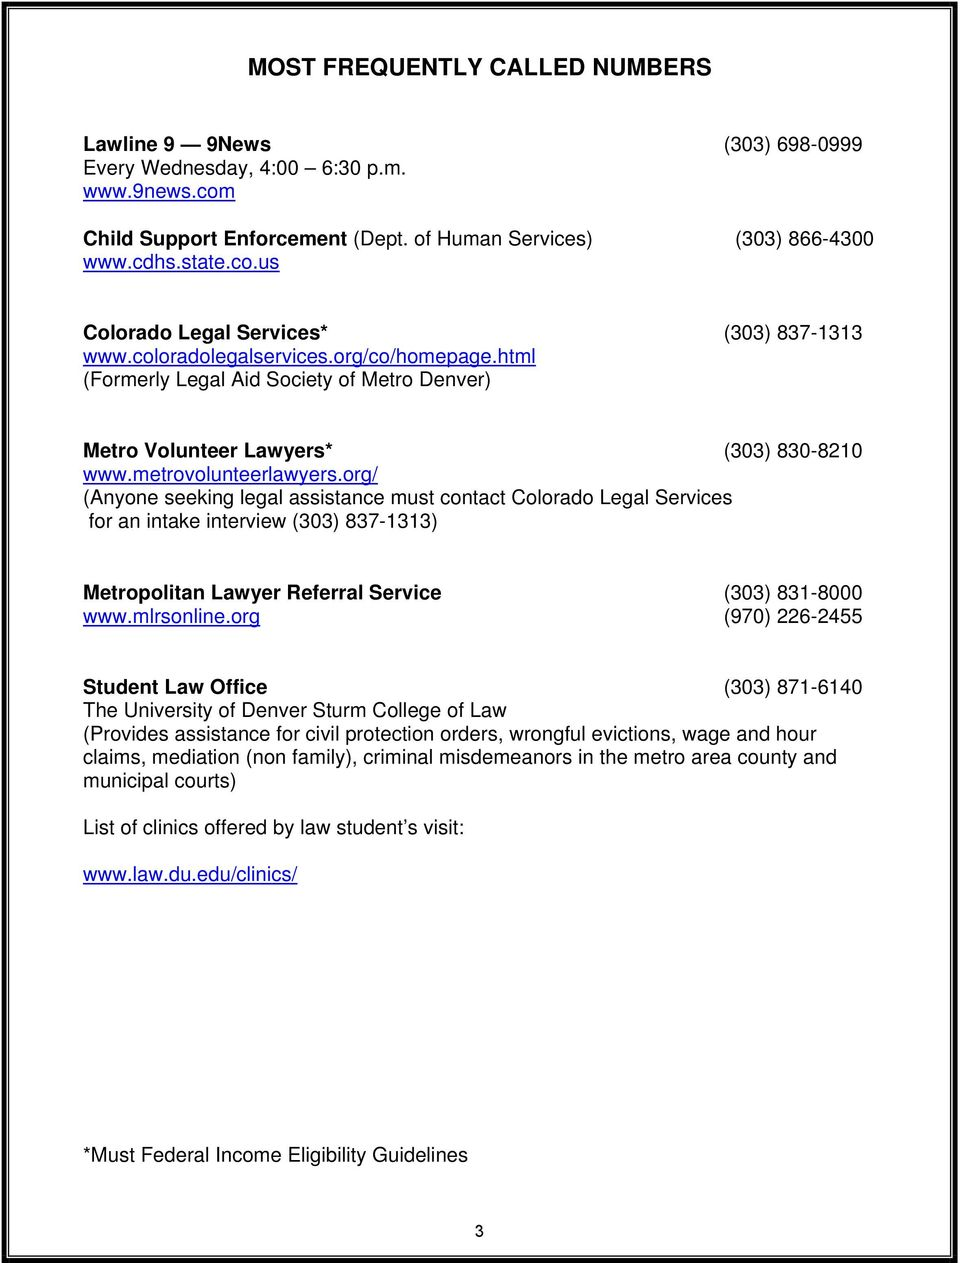 org/ (Anyone seeking legal assistance must contact Colorado Legal Services for an intake interview (303) 837-1313) Metropolitan Lawyer Referral Service (303) 831-8000 www.mlrsonline.